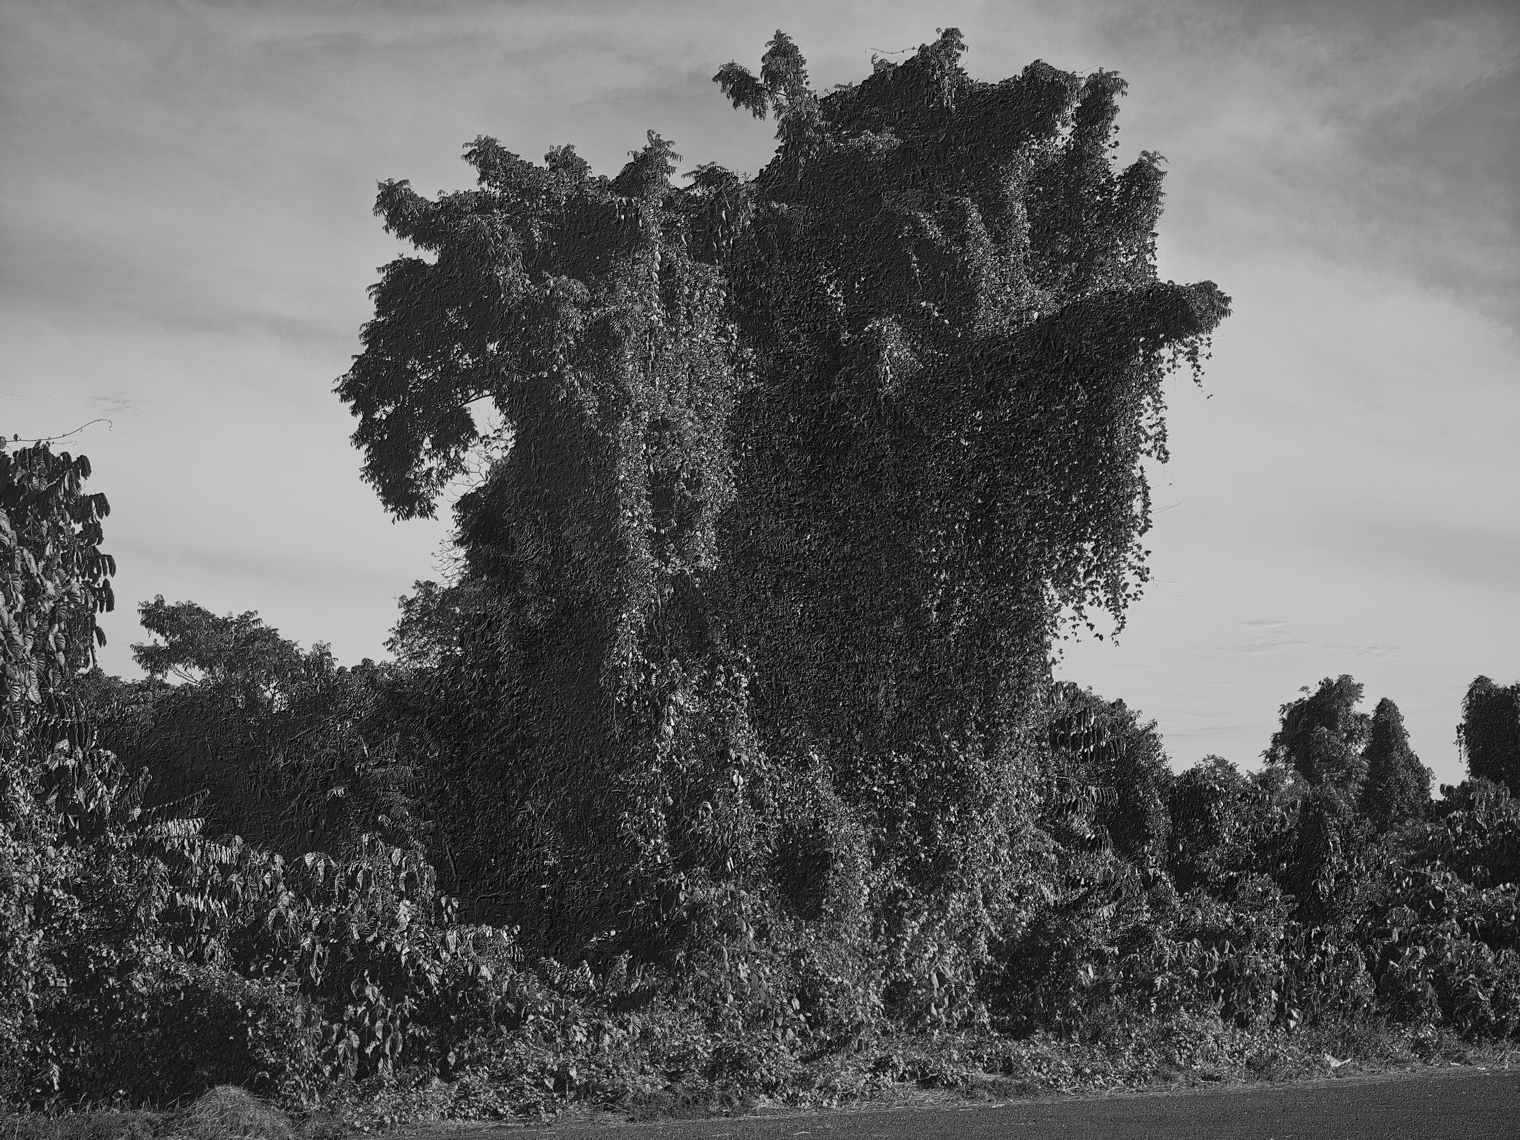 Jon Wyatt Photography - A tsunami of vegetation - invasive vines in samoa